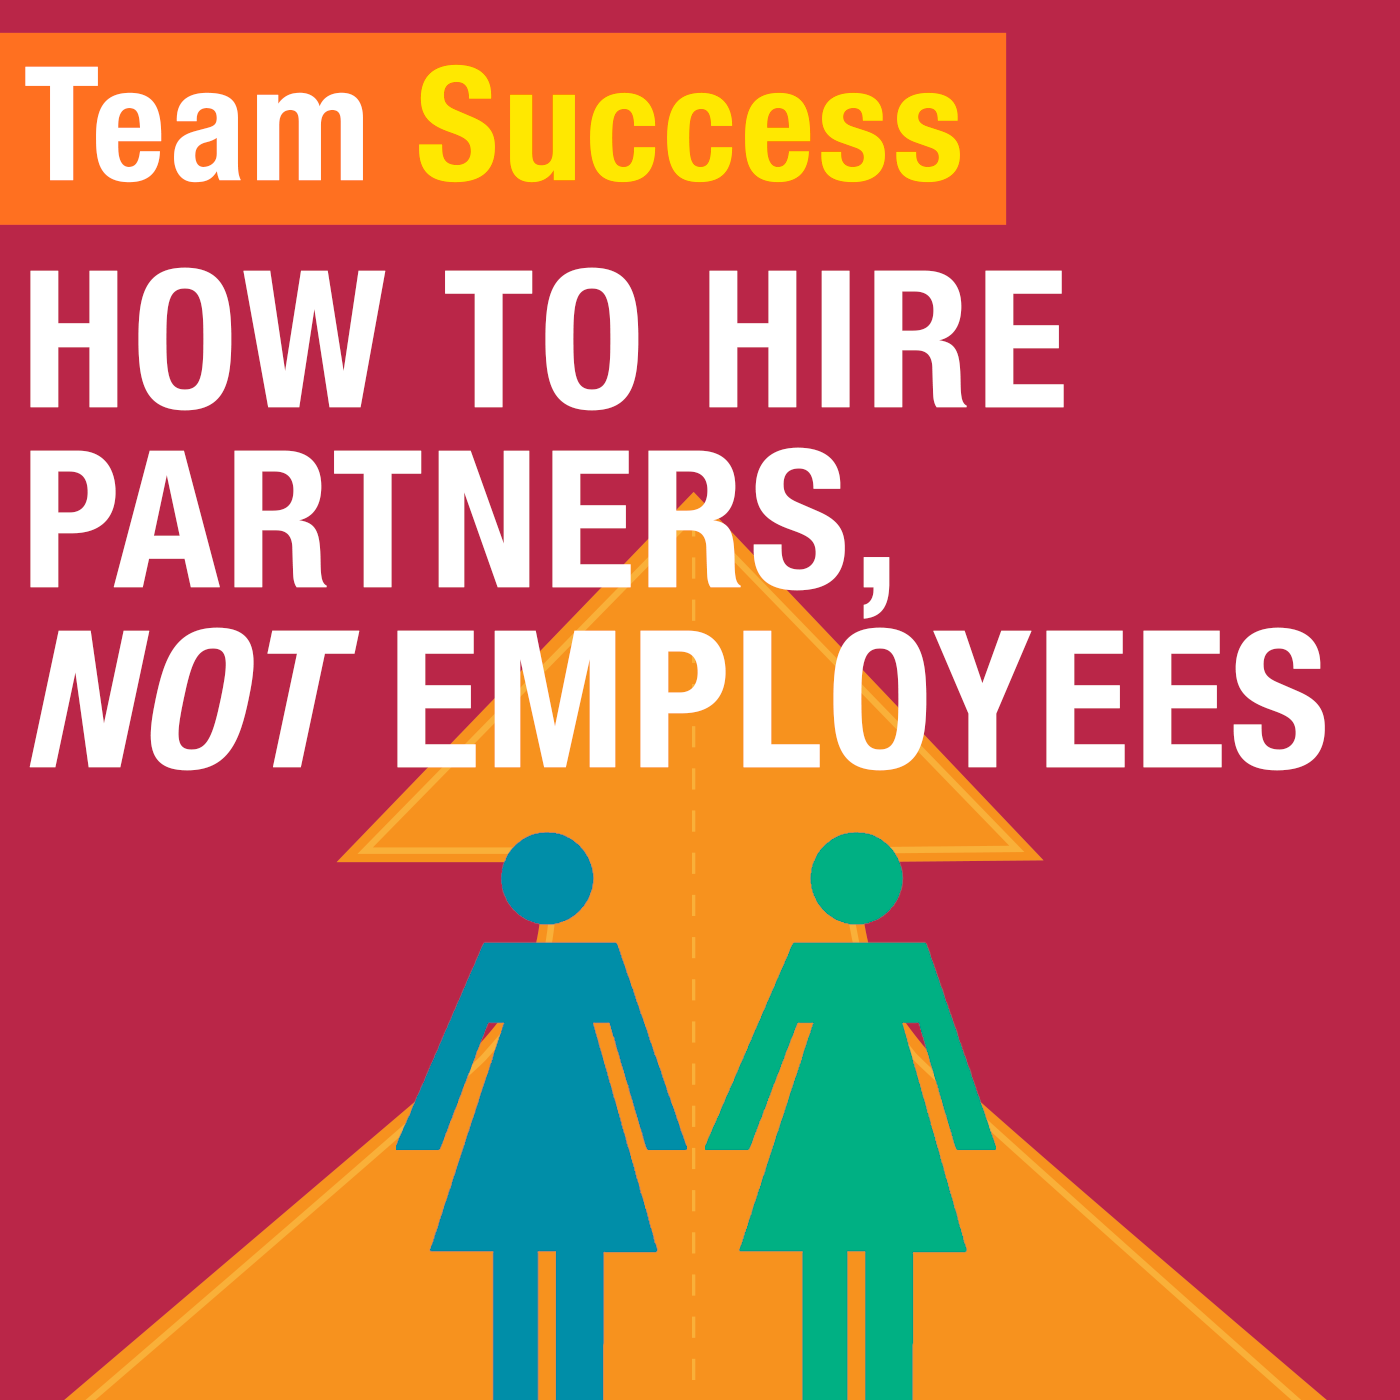 How To Hire Partners, Not Employees